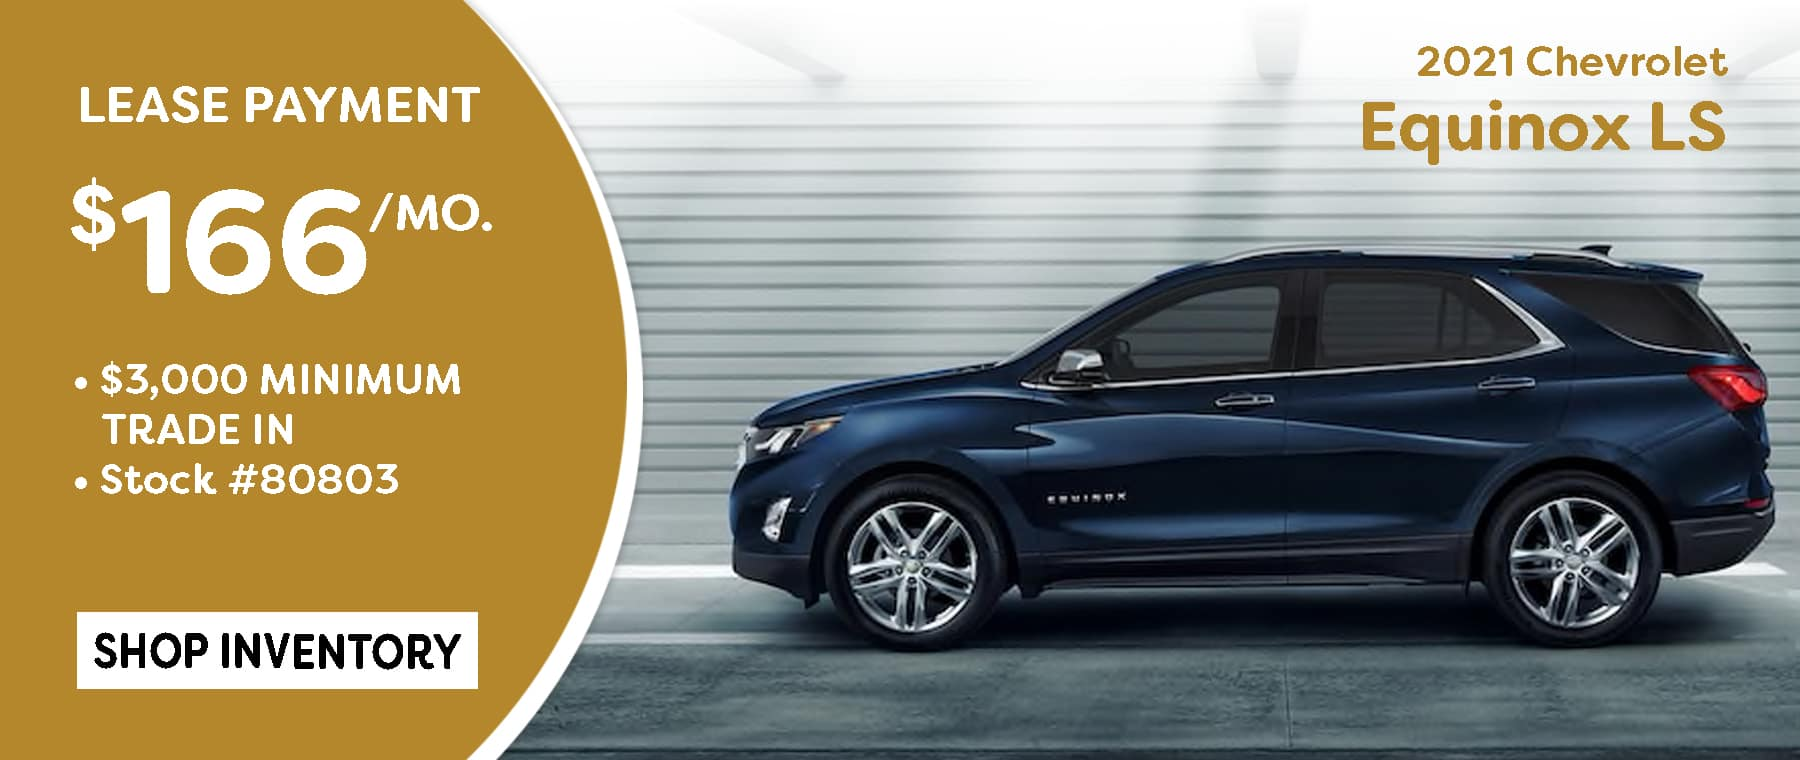 May 2021 Equinox Lease Offer $166/mo*